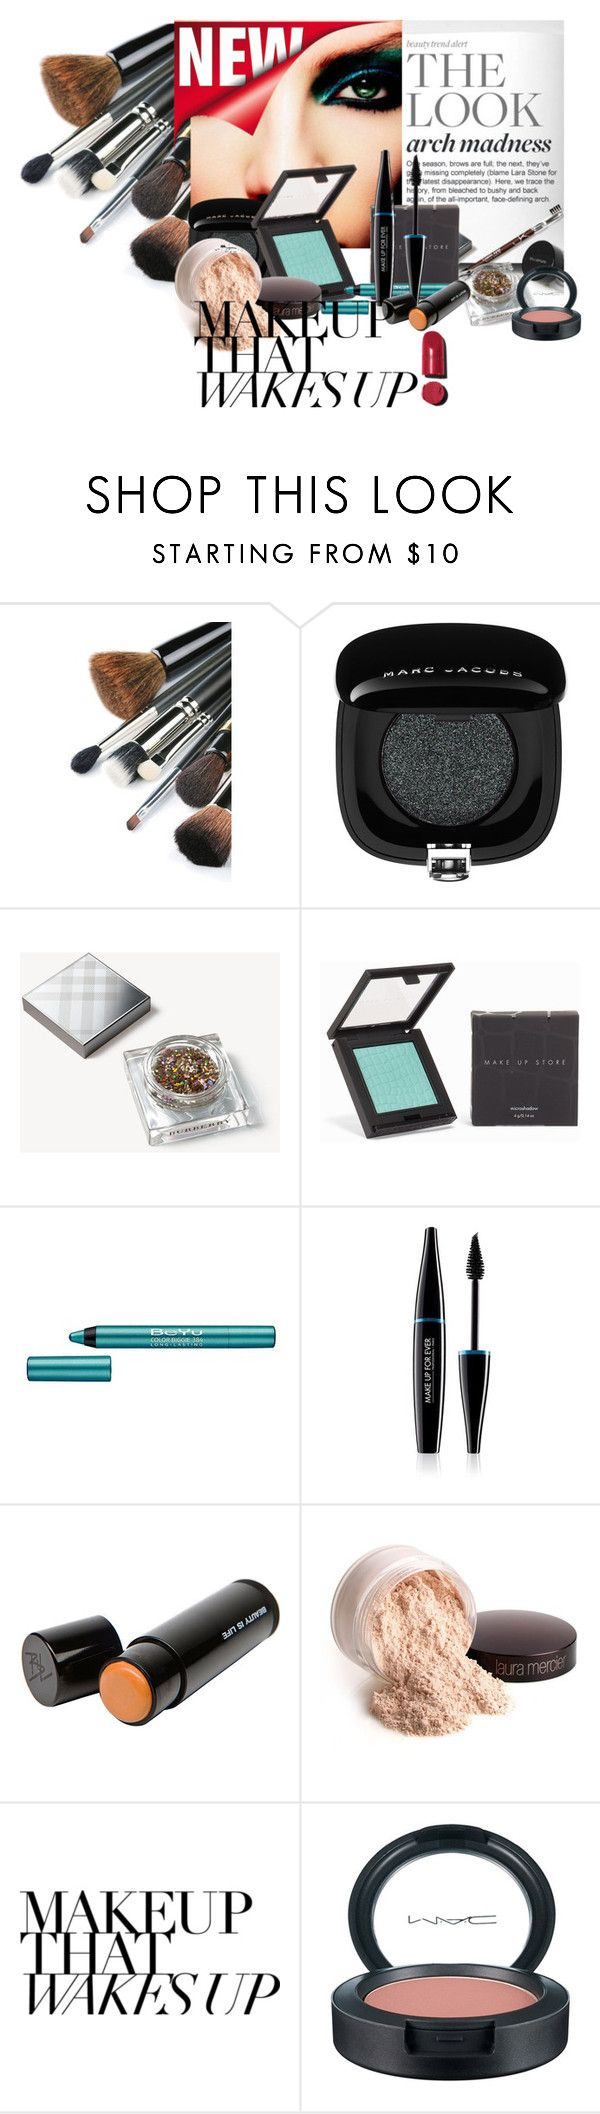 """Make up"" by mljilina ❤ liked on Polyvore featuring beauty, Marc Jacobs, Burberry, MAKE UP STORE, BeYu, MAKE UP FOR EVER, Beauty Is Life, Laura Mercier, MAC Cosmetics and Chanel"